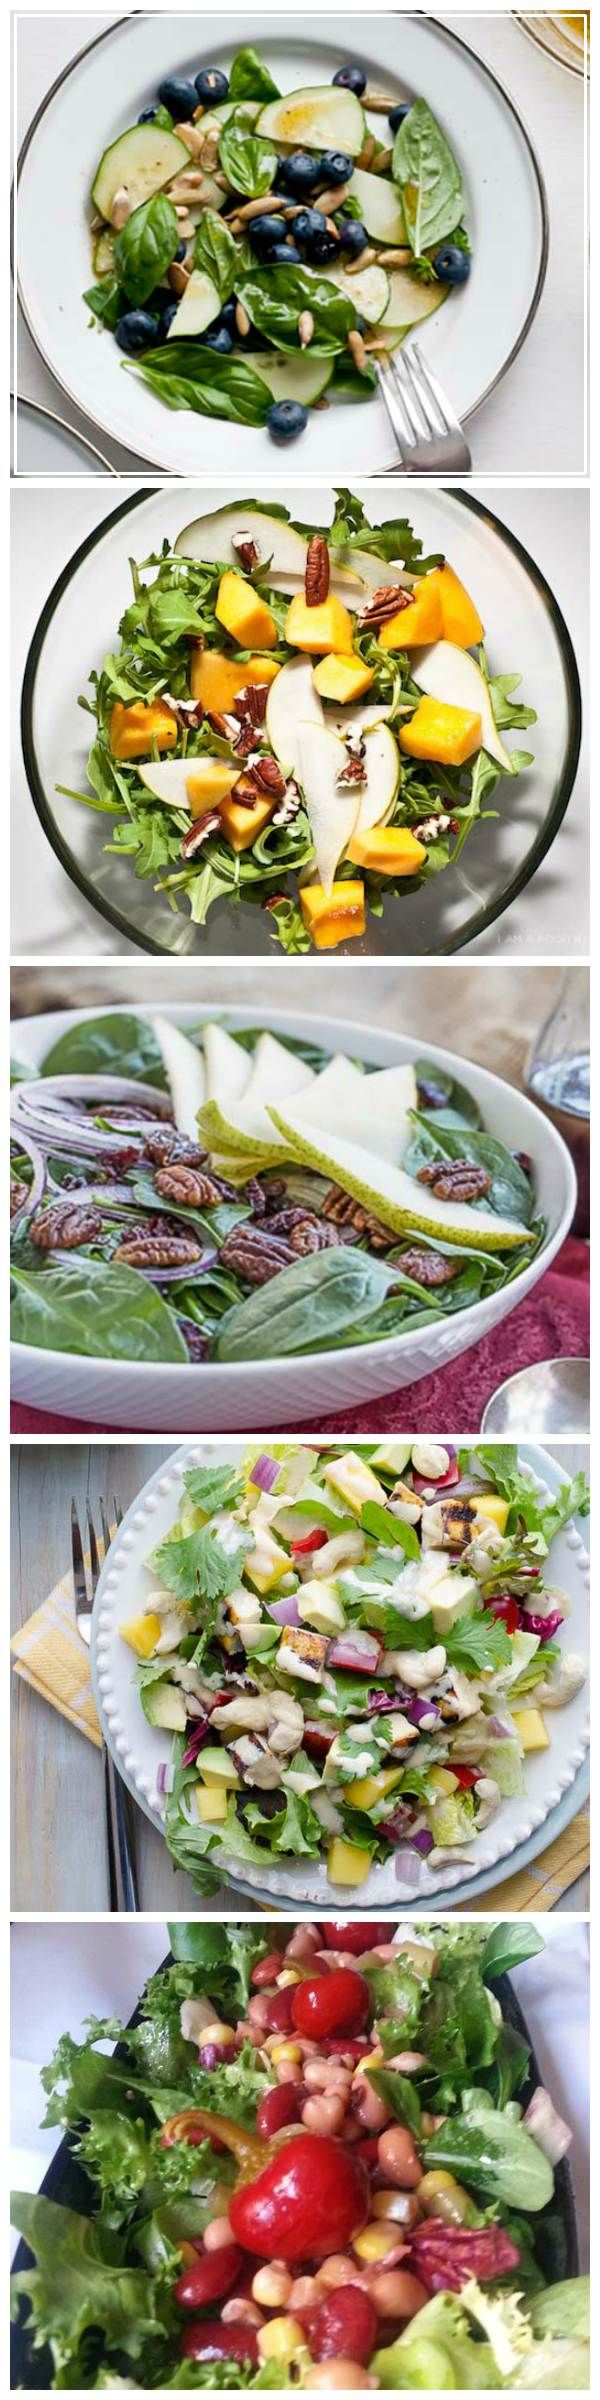 We found 7 amazing salads for 7 days of the week, each from a different great blogger. From Thai cashew chicken mango, to avocado and heirloom tomato, they have the whole week covered with these healthy, fresh recipes. Yum!